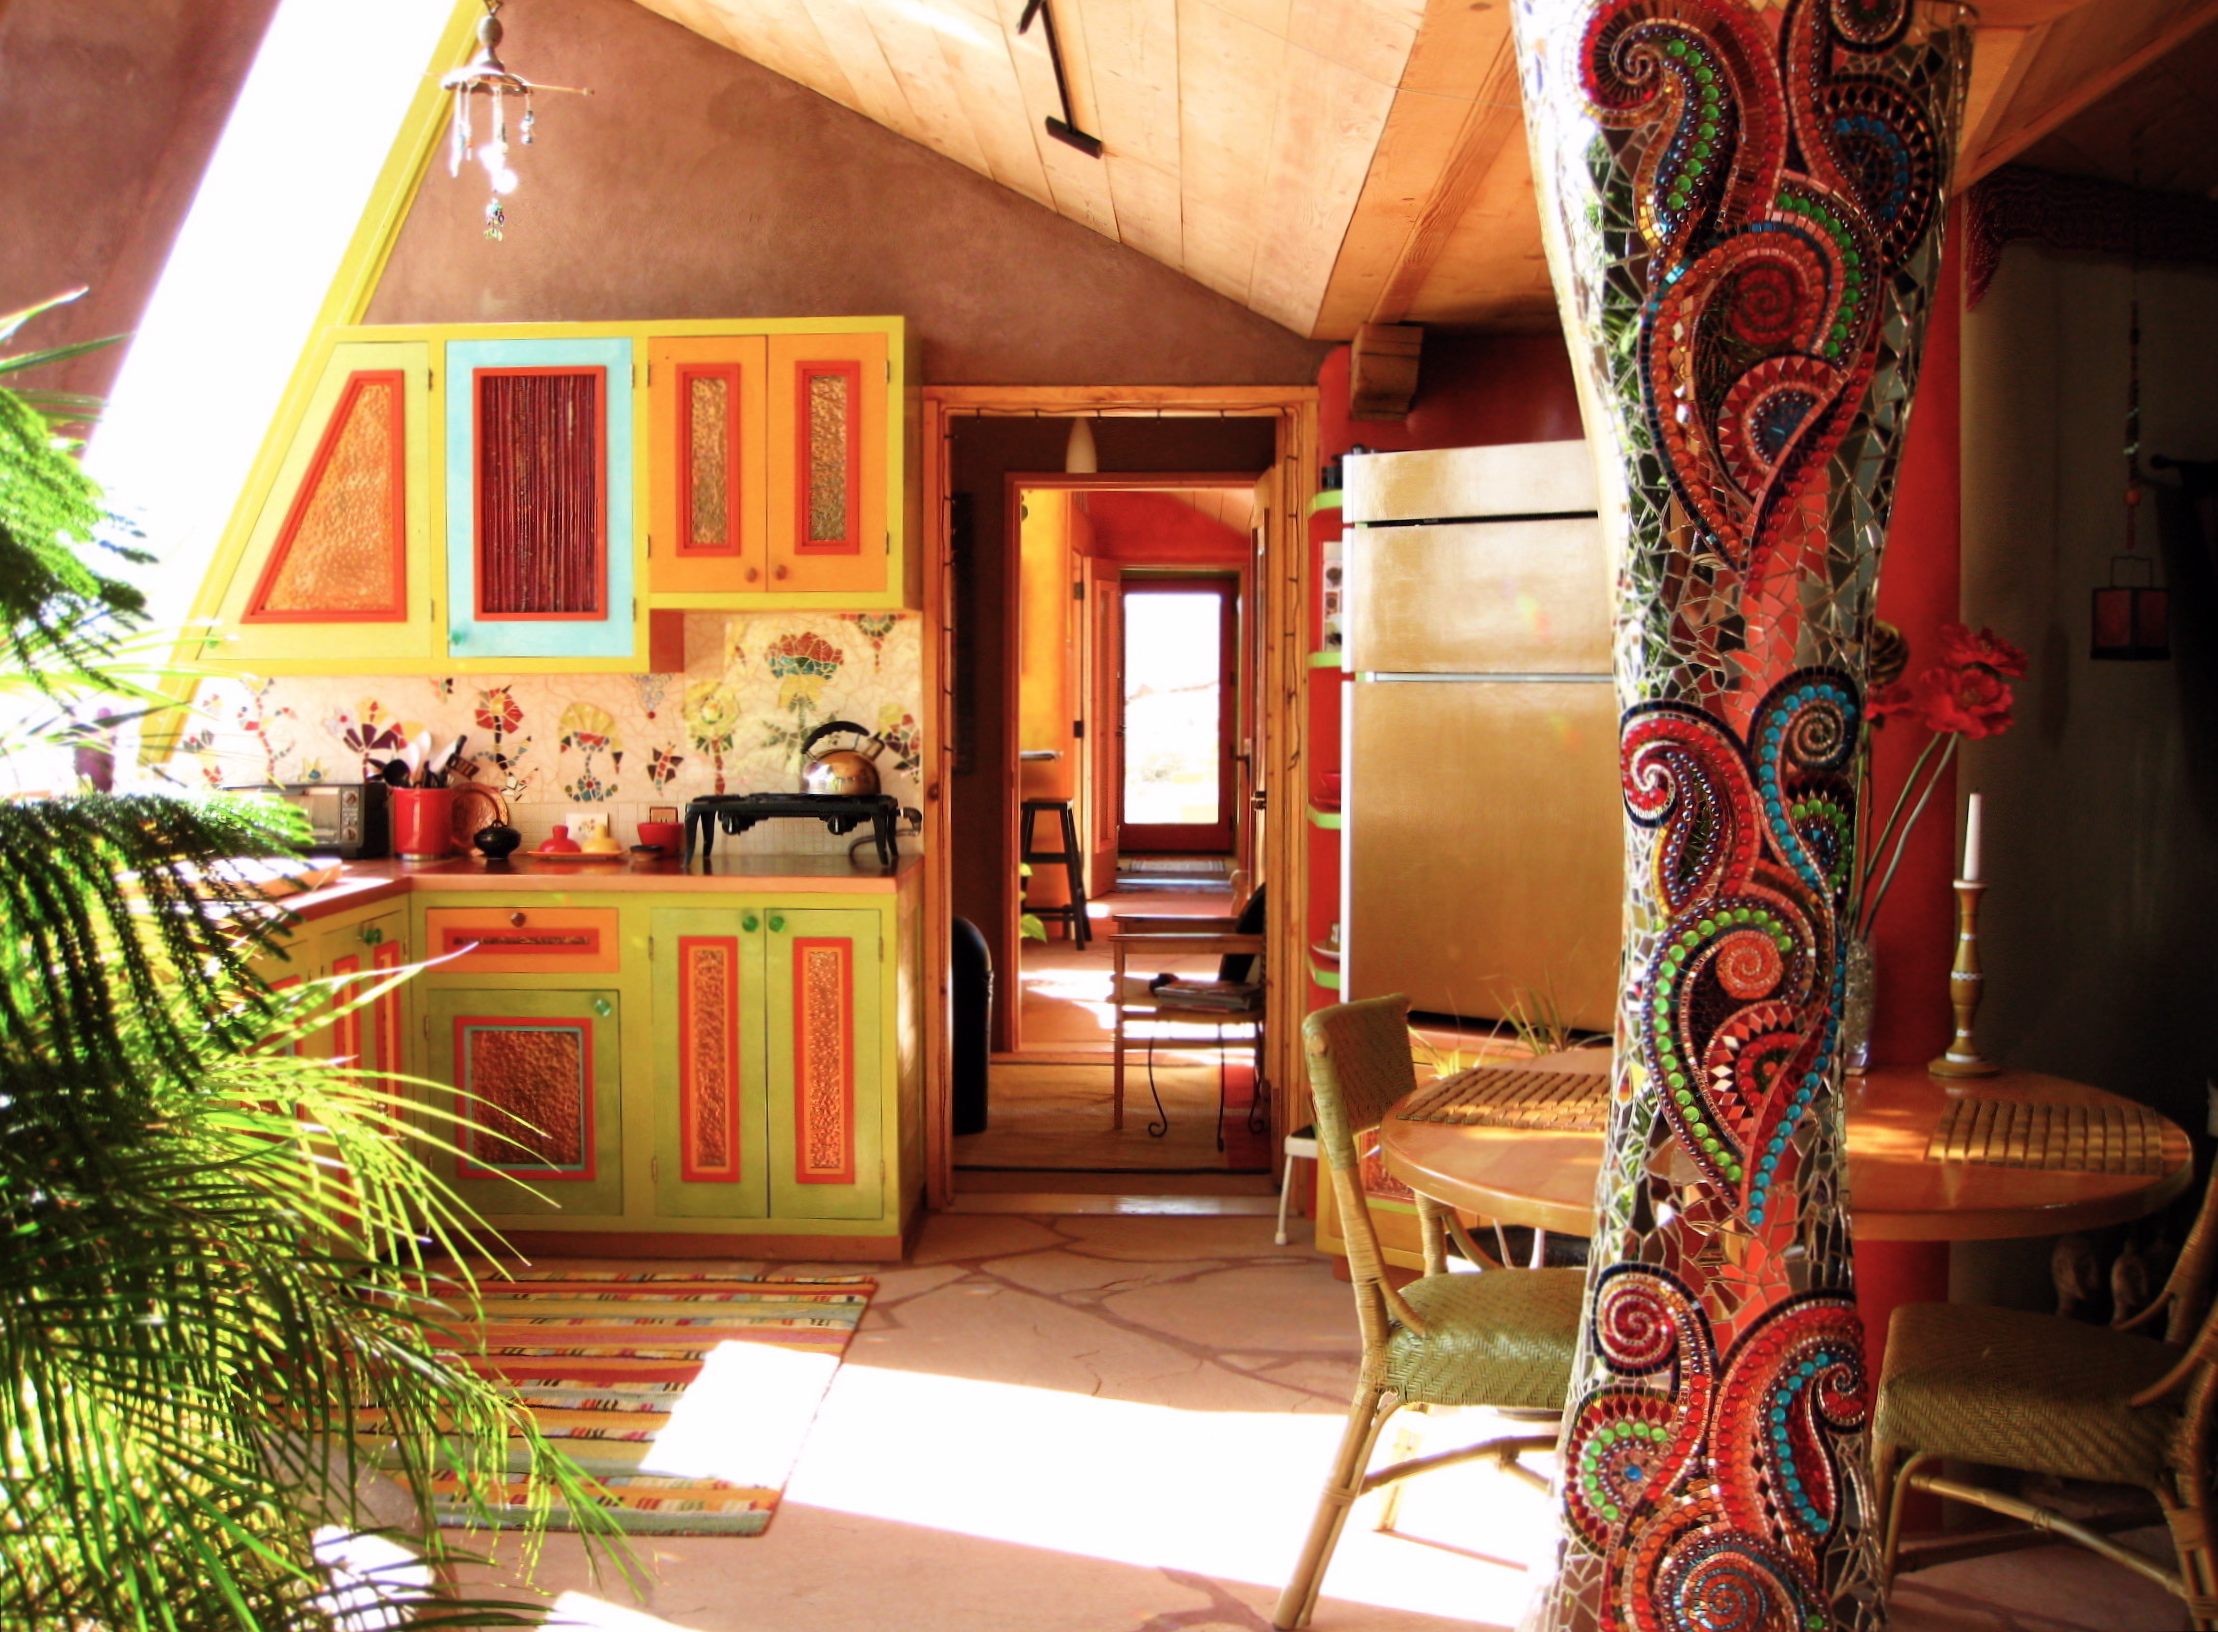 New Mexico Earthship Internship Meaningful Work Project